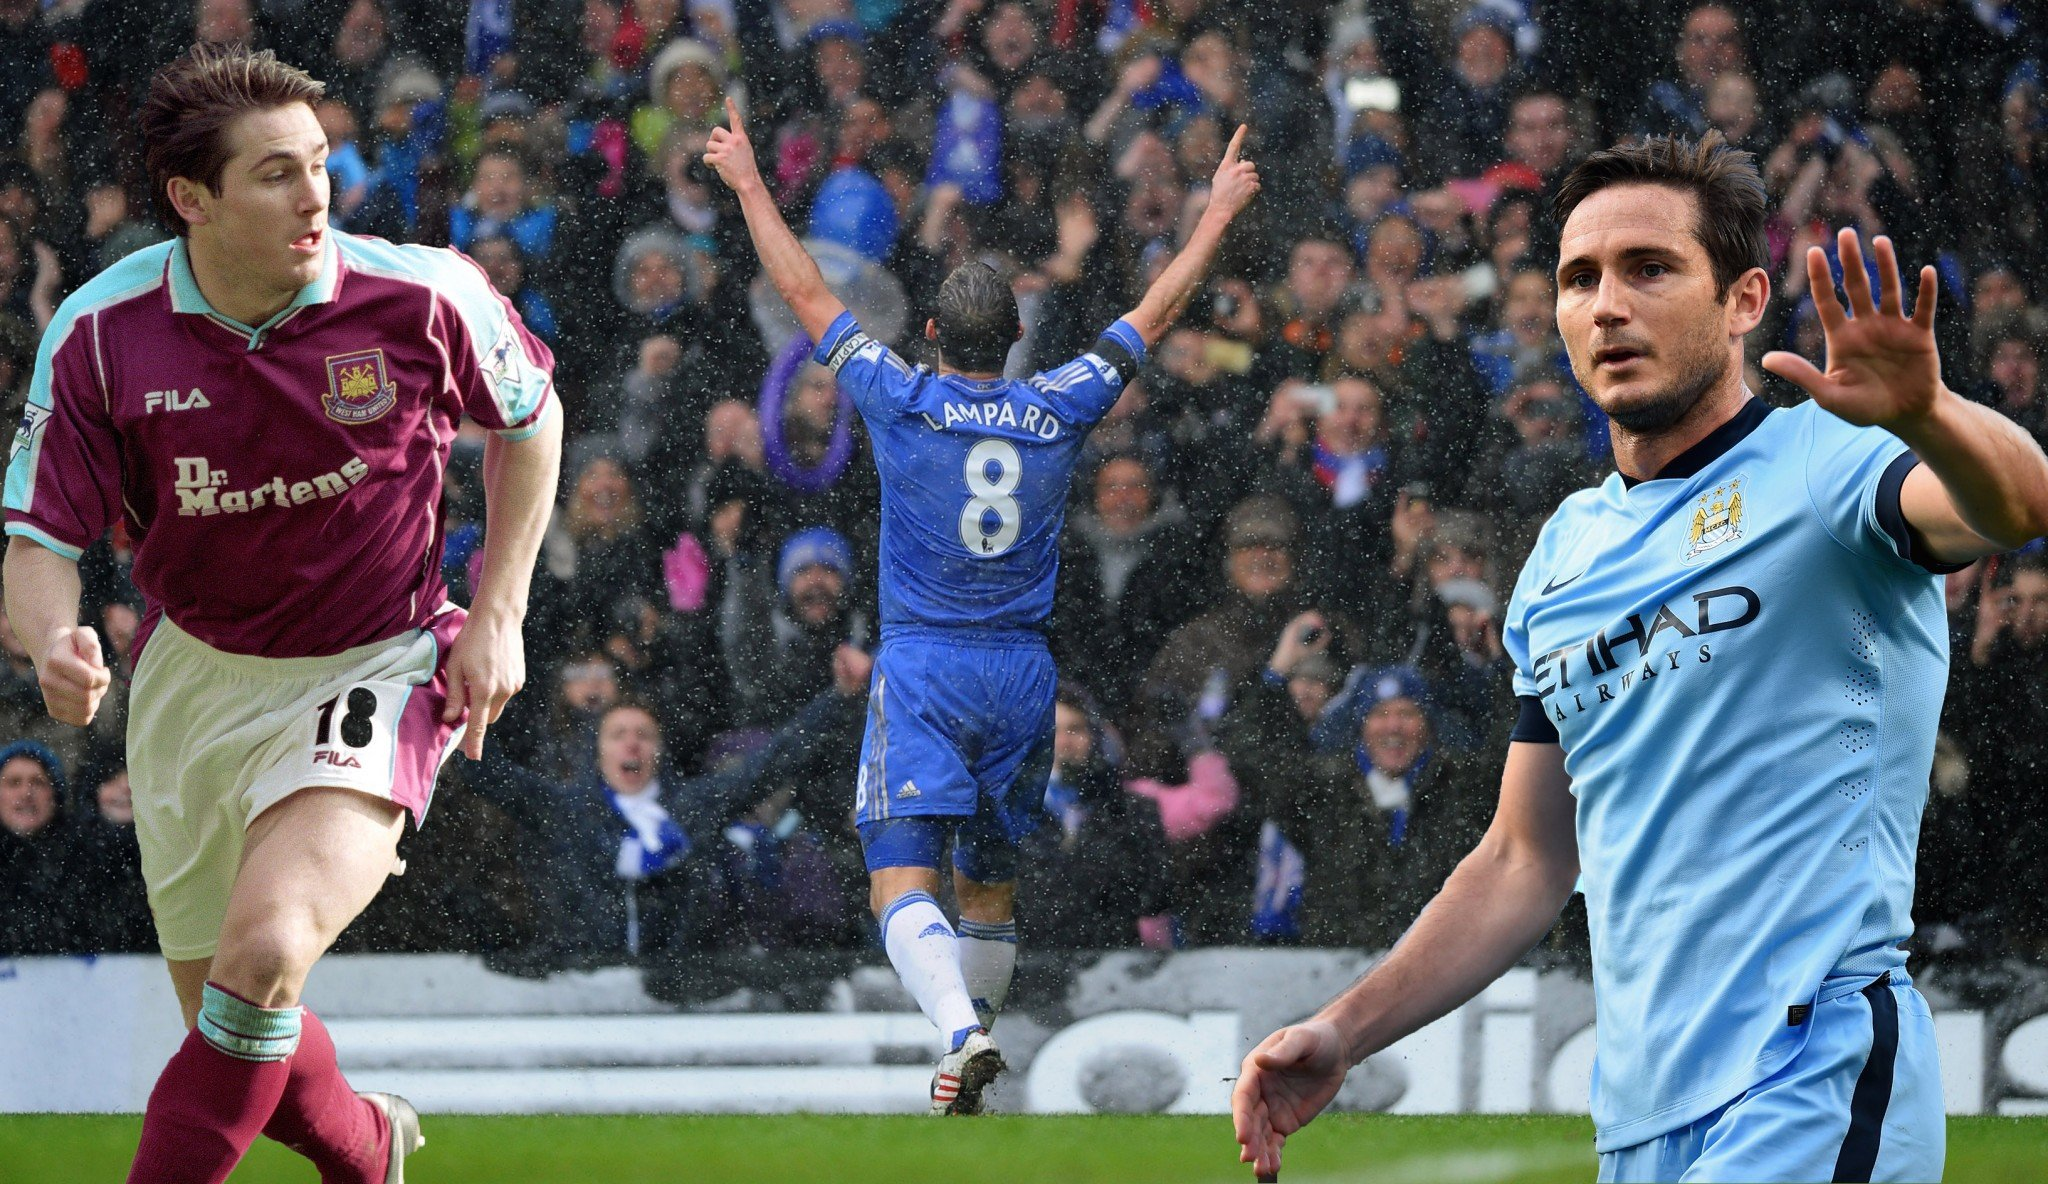 Frank Lampard starred for West Ham, Chelsea and Manchester City